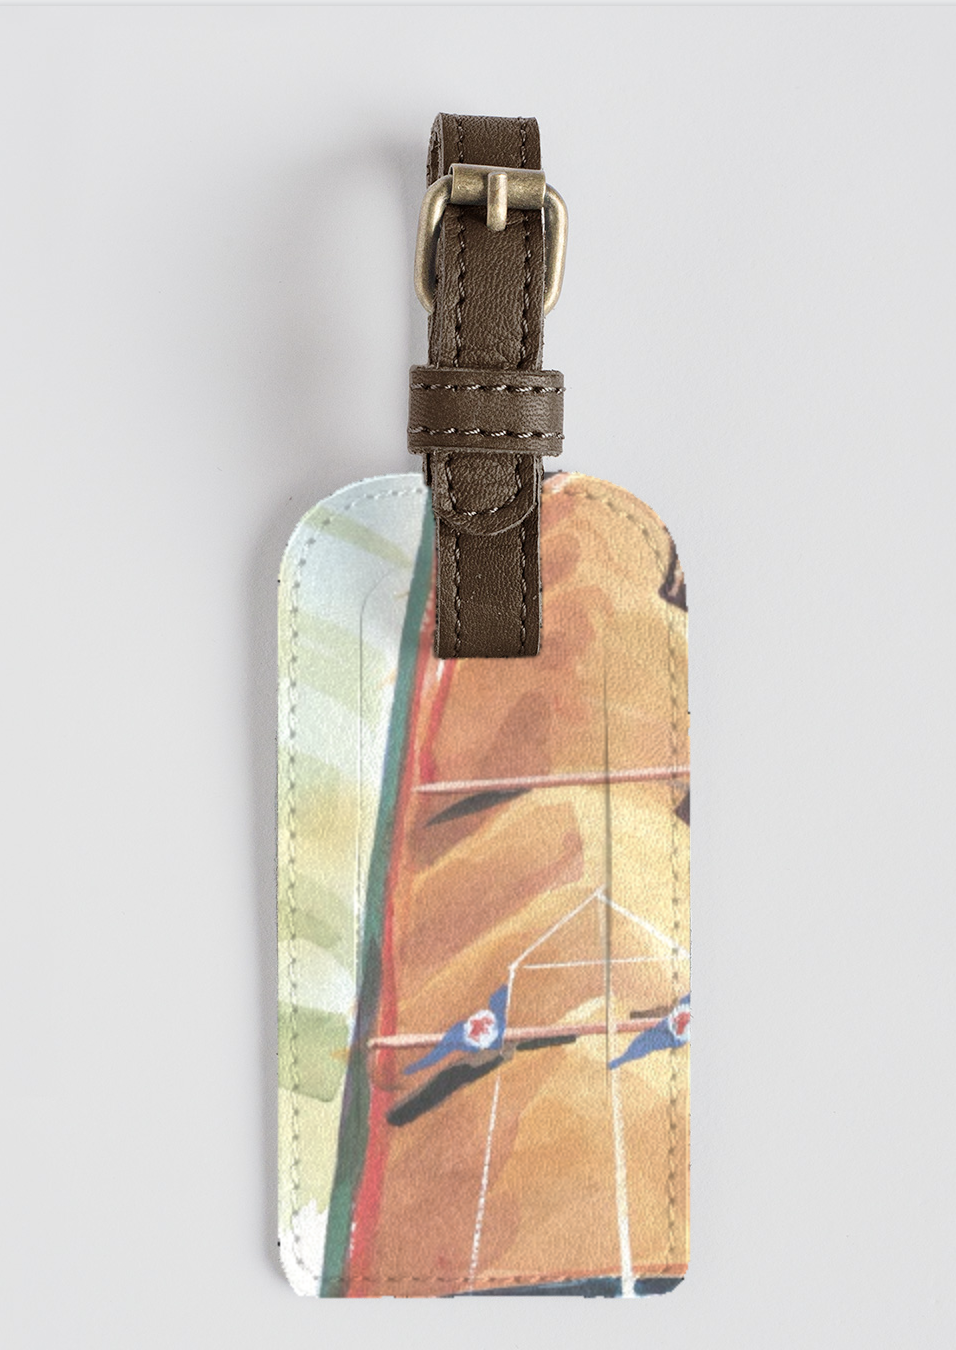 luggage-tag-WilliamHeydt-VidaCollection2018-64.png